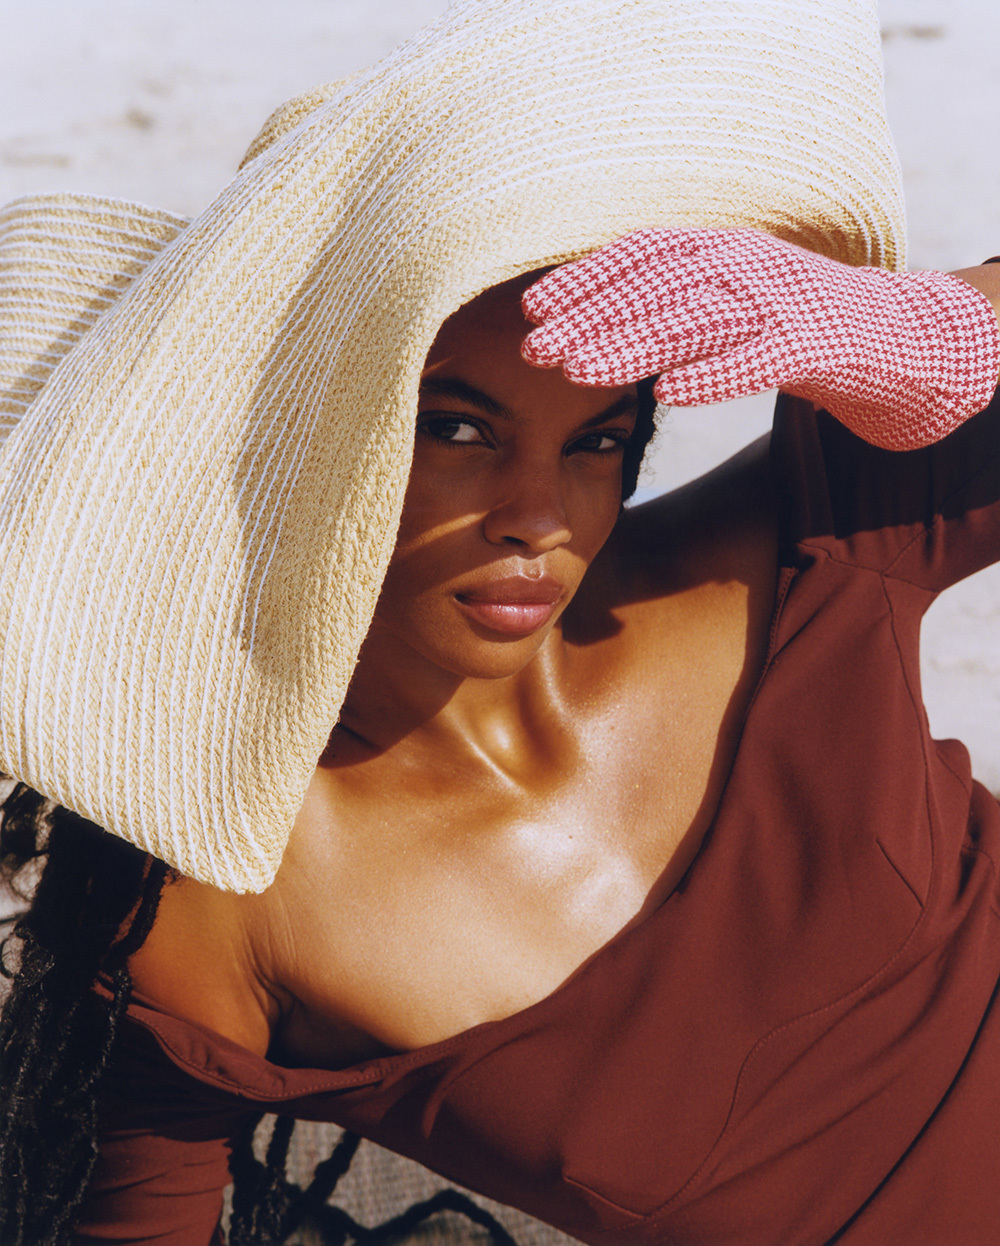 Najiyah Imani by Jonathan Schoonover for Elle Mexico January 2021